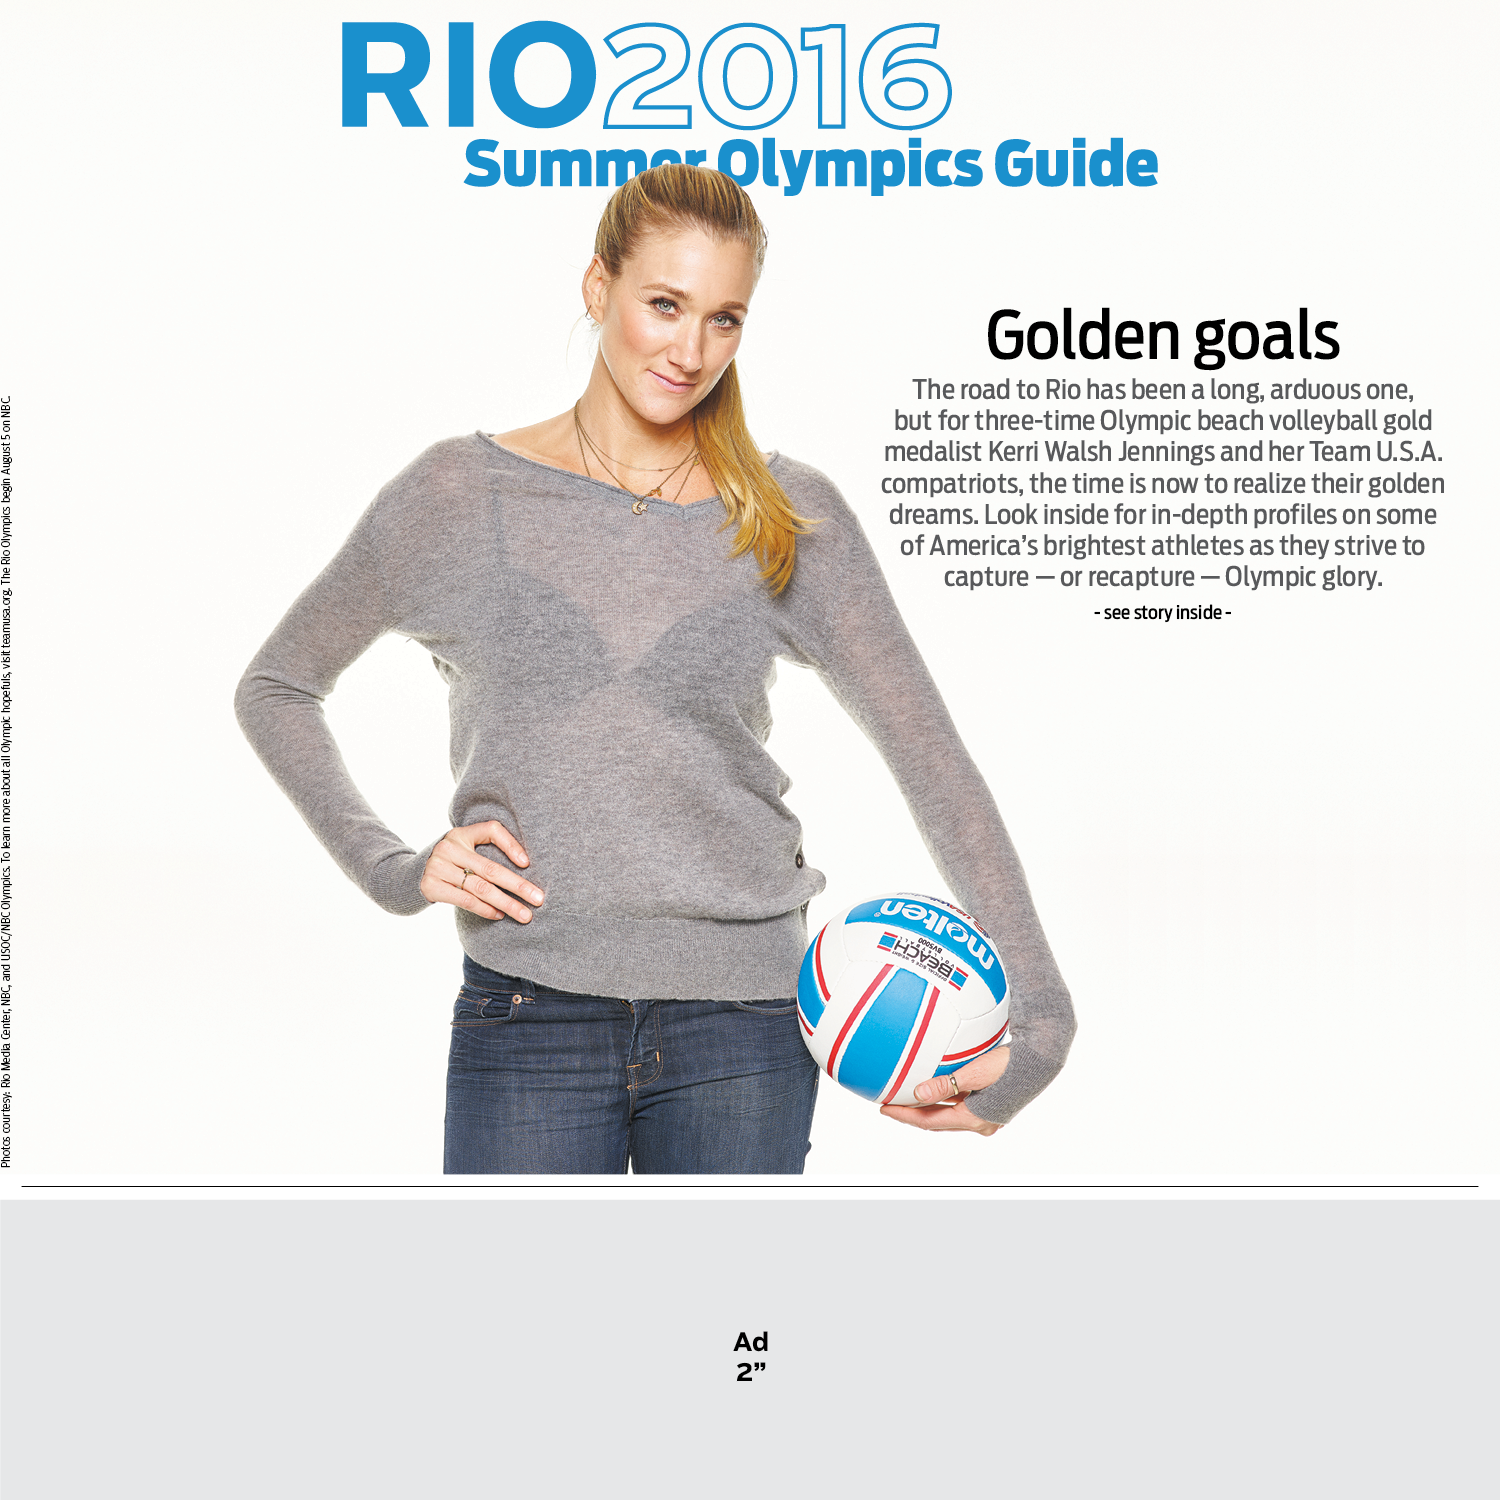 Image of Olympic Guide 2016